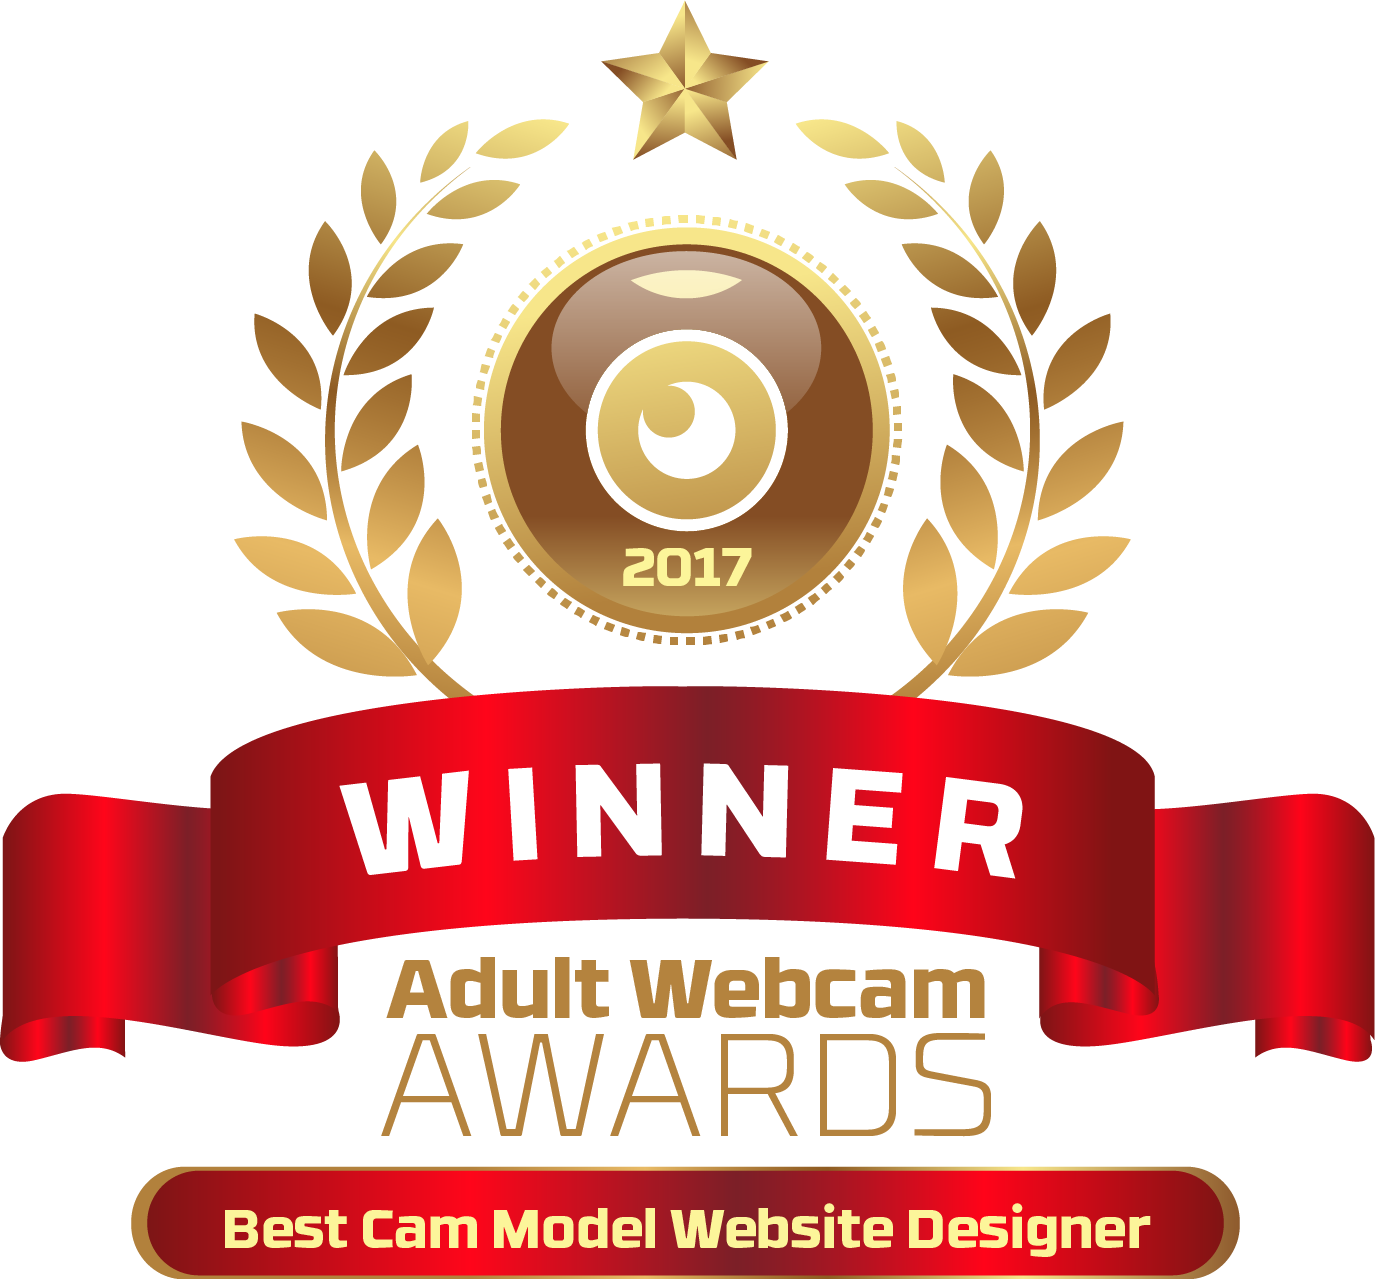 best cam model website designer 2